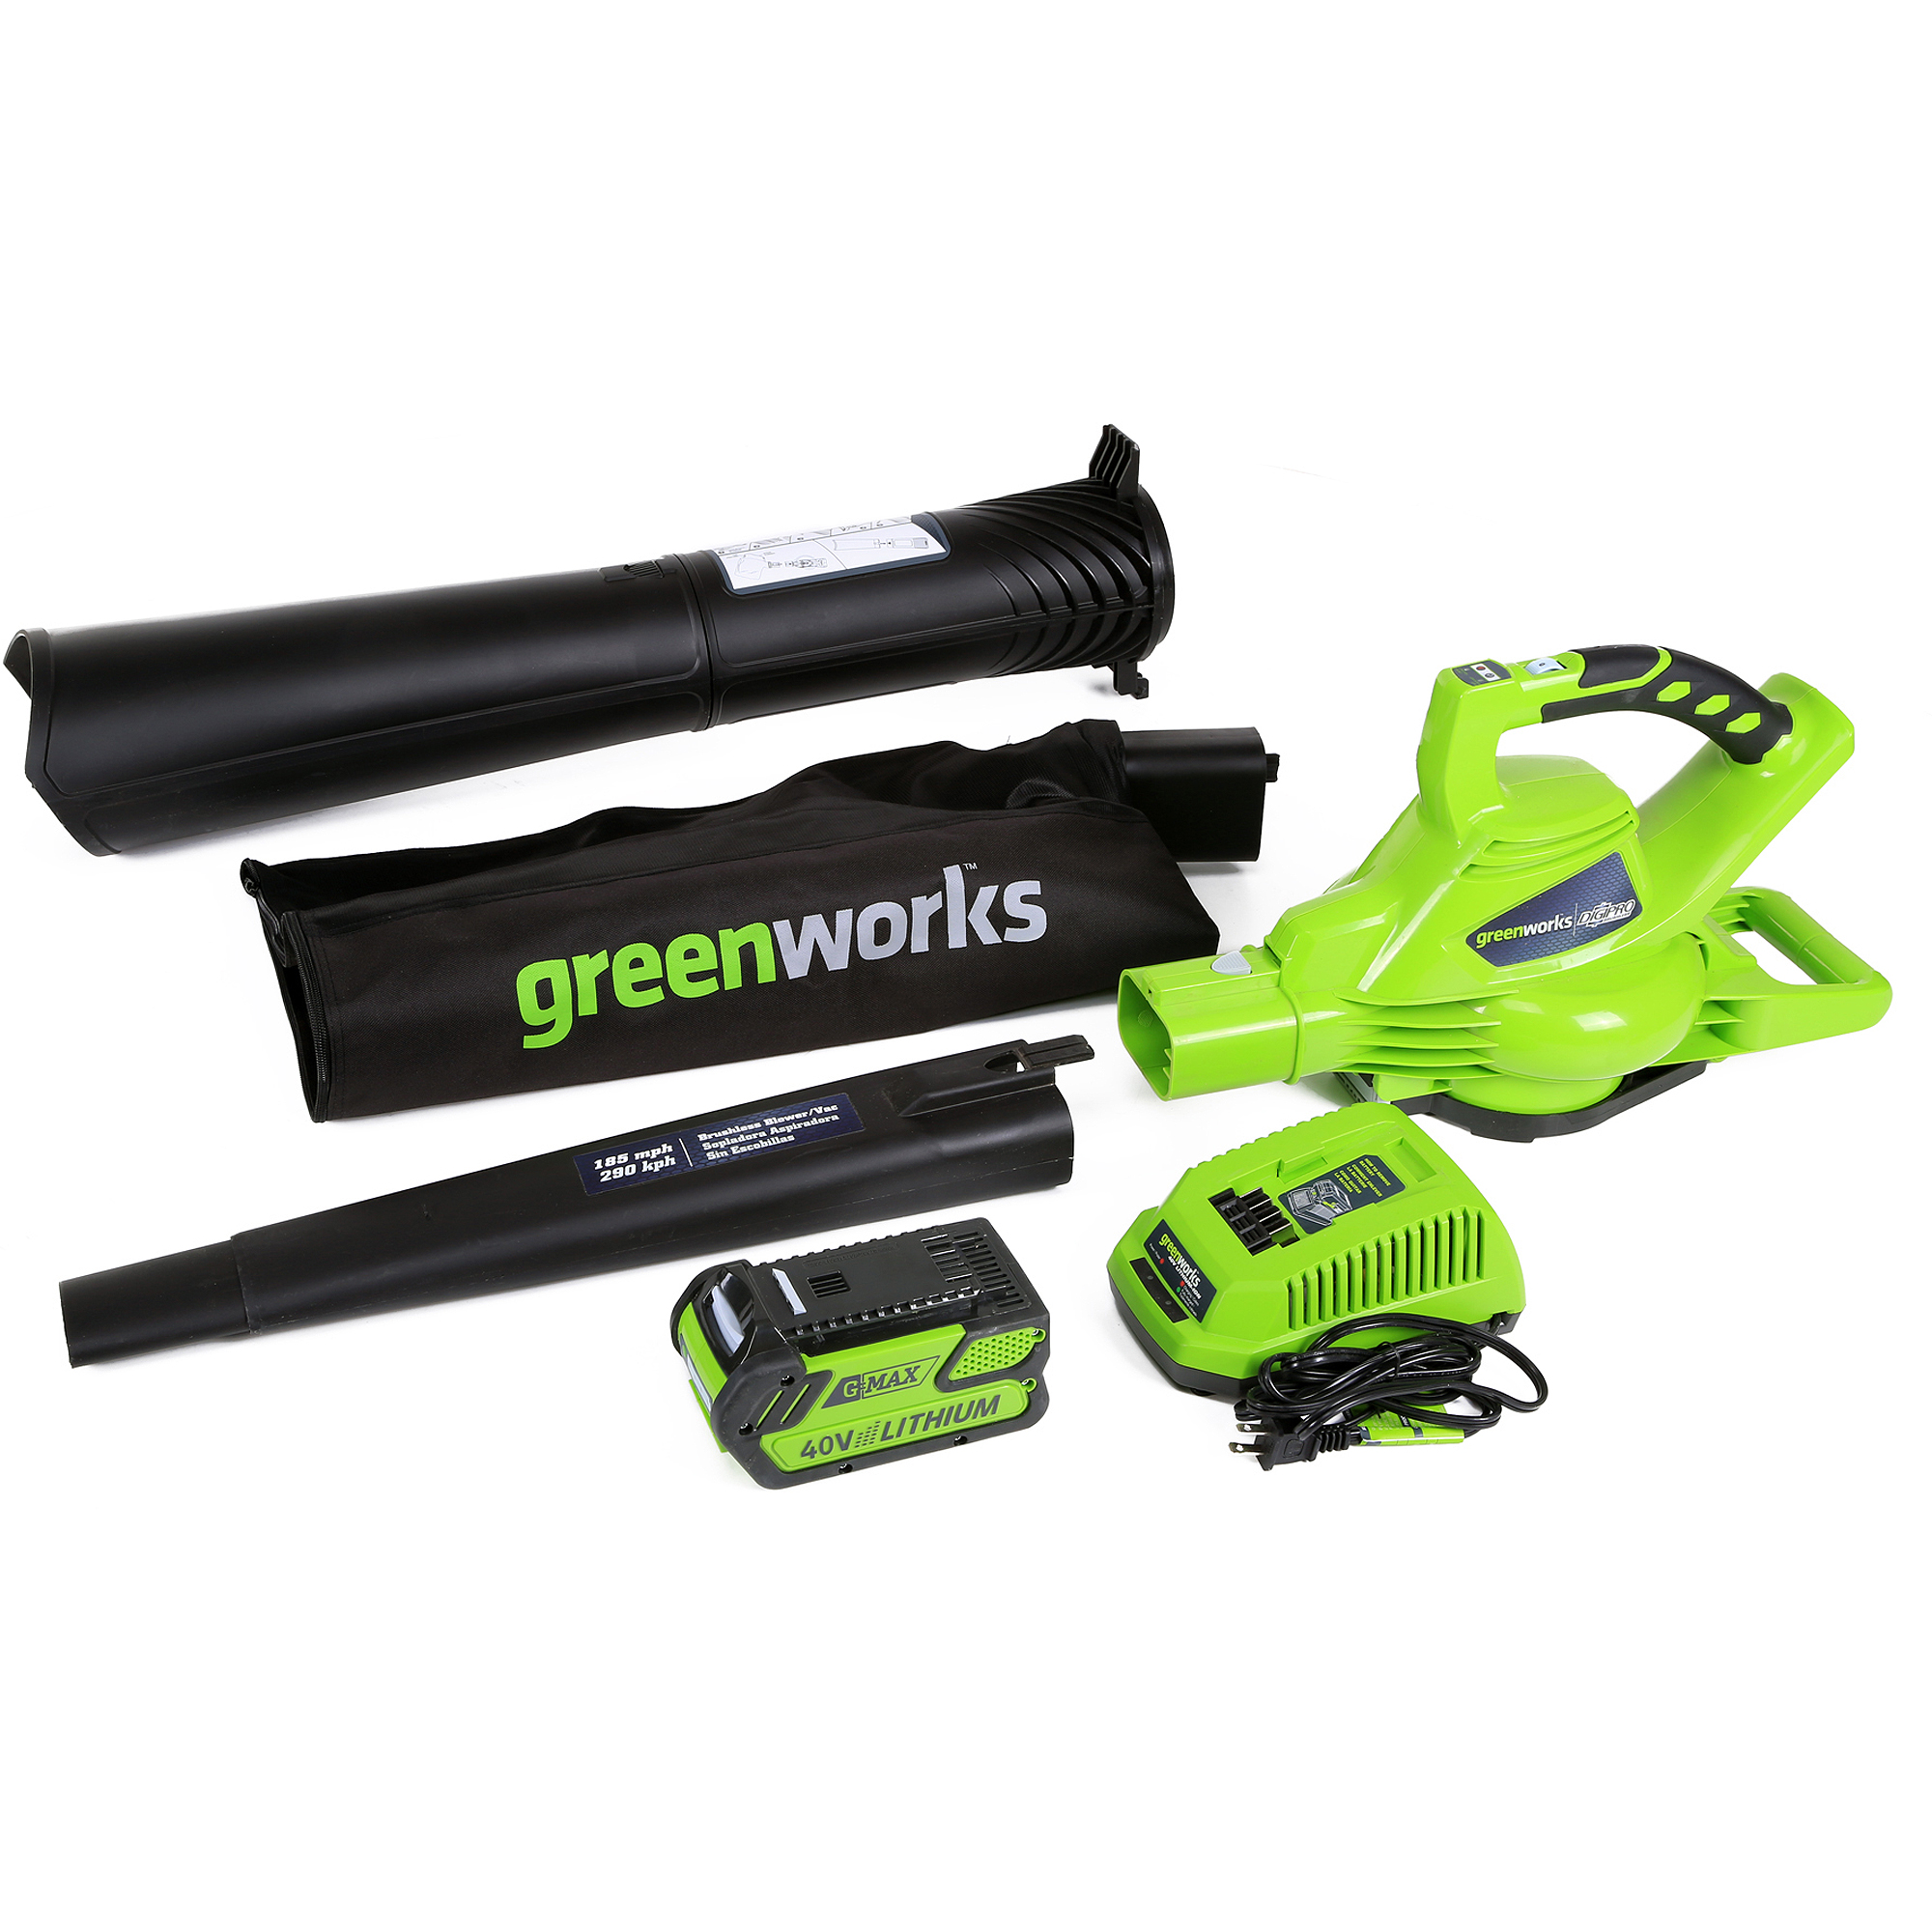 GreenWorks 24322 40V Brushless Leaf Blower, Includes 4.0Ah battery and charger